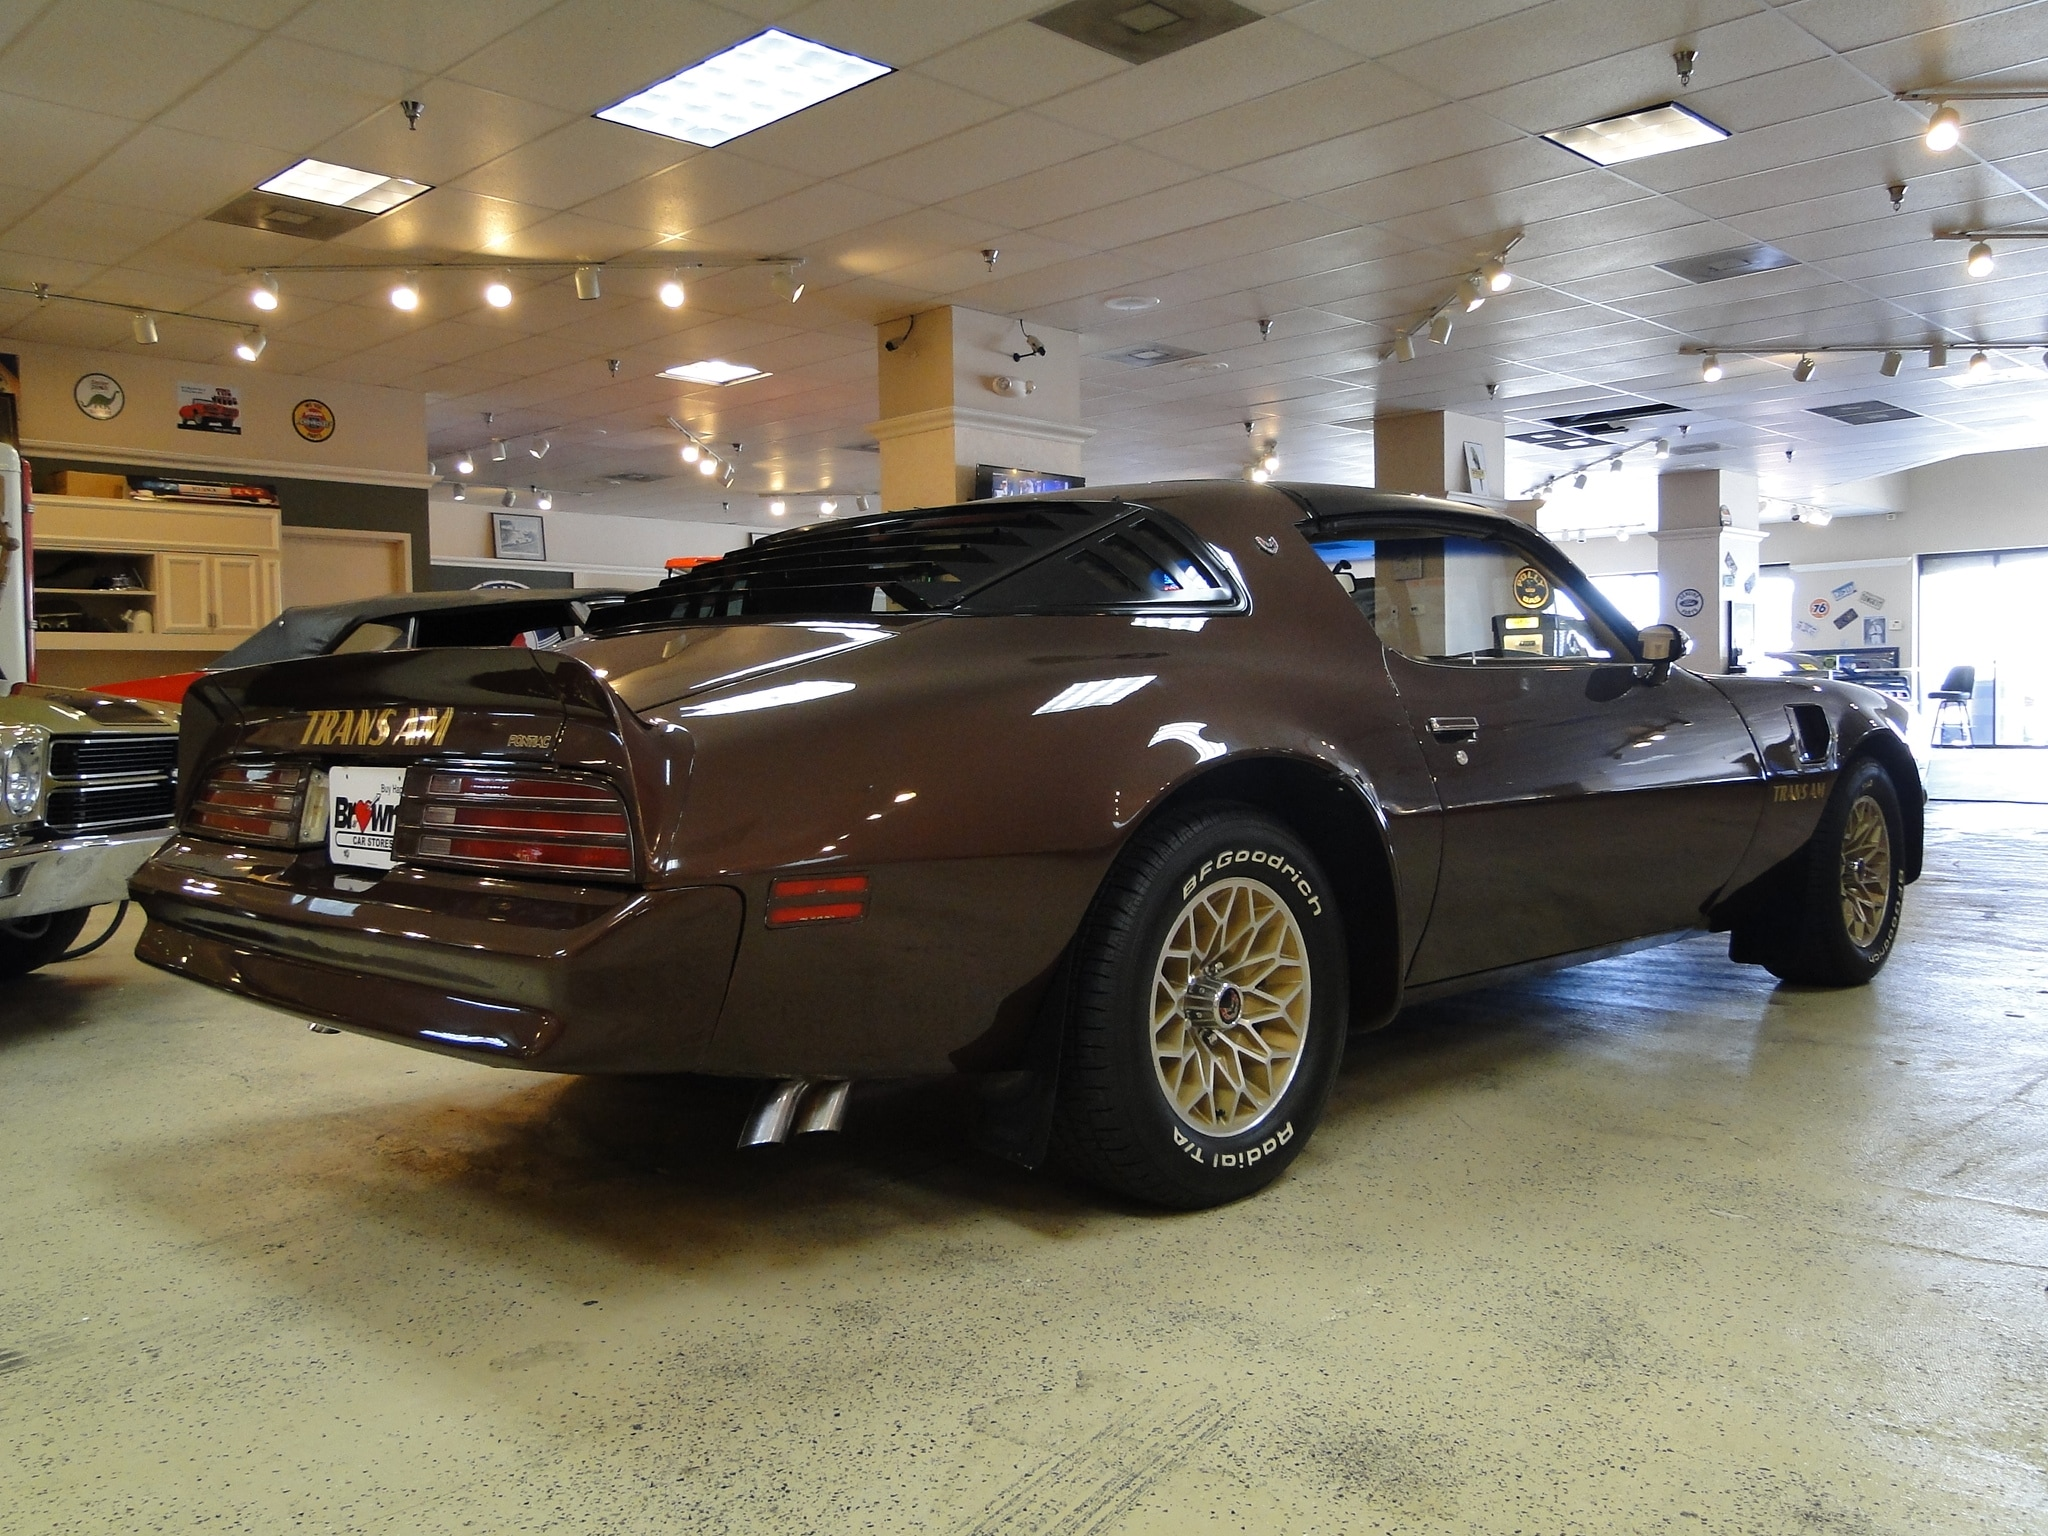 1977 Trans Am Brentwood Brown For Sale Html Autos Post